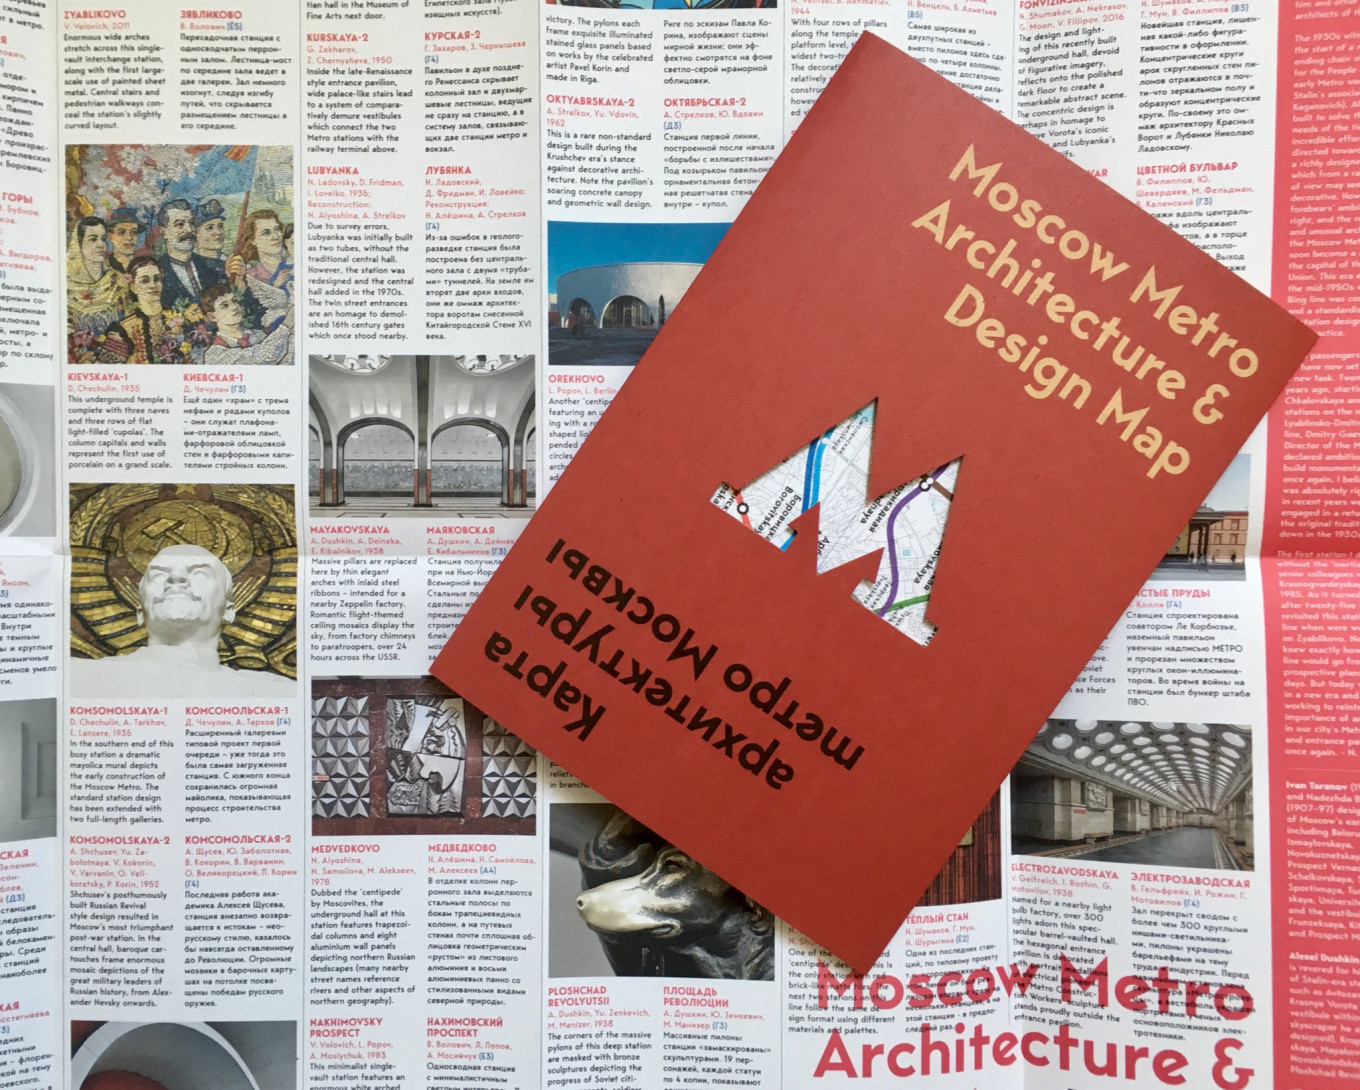 The carefully curated map transports readers to the golden age of Moscow metro architecture.				 				Blue Crow Media